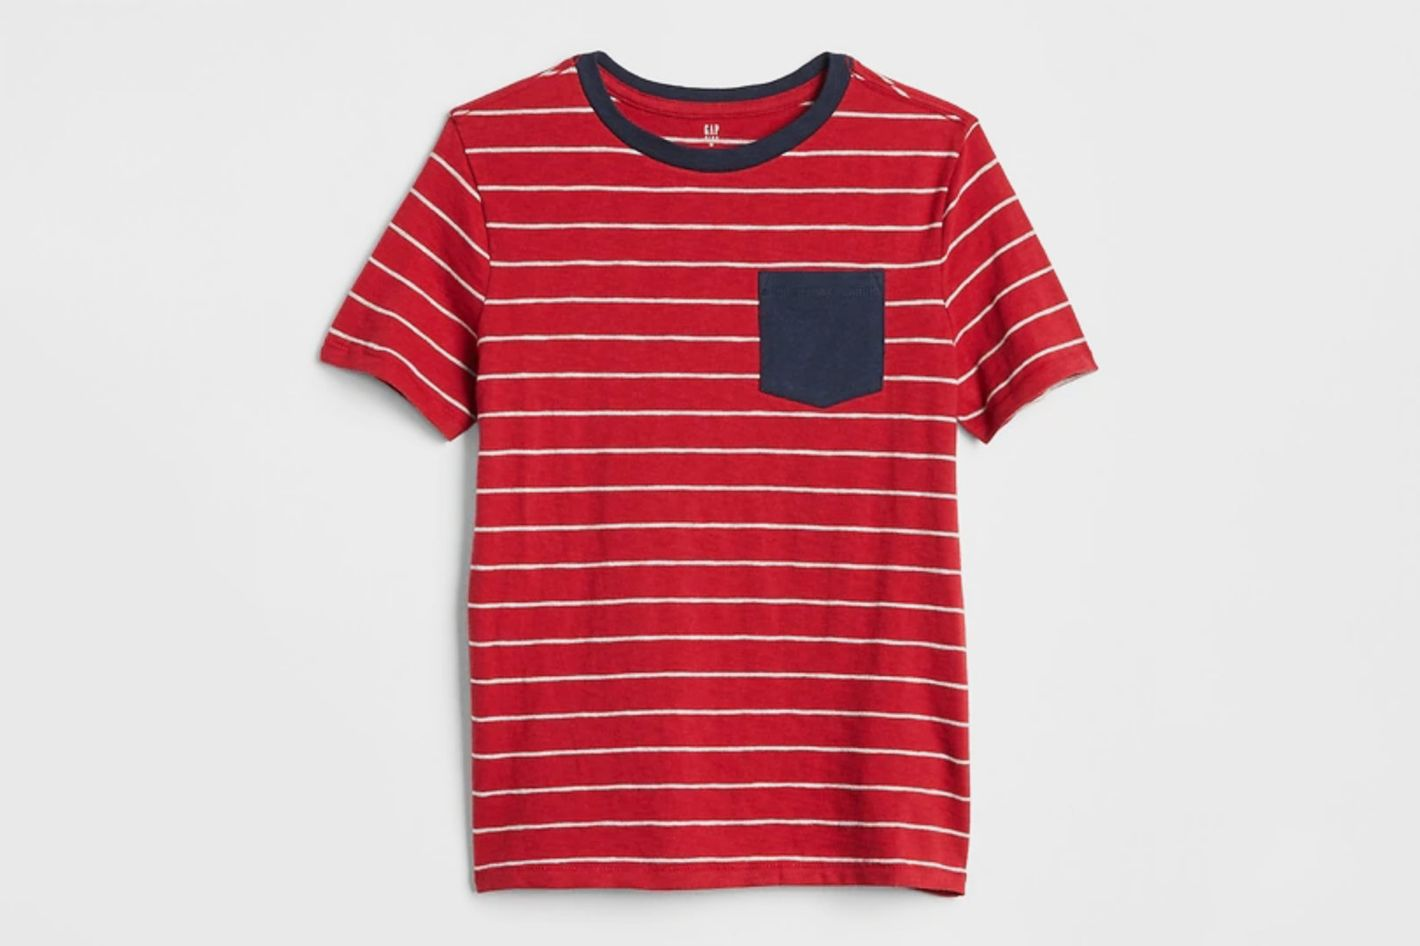 e69d18044 15 Best Kids' T-Shirts, According to Stylish Parents: 2018